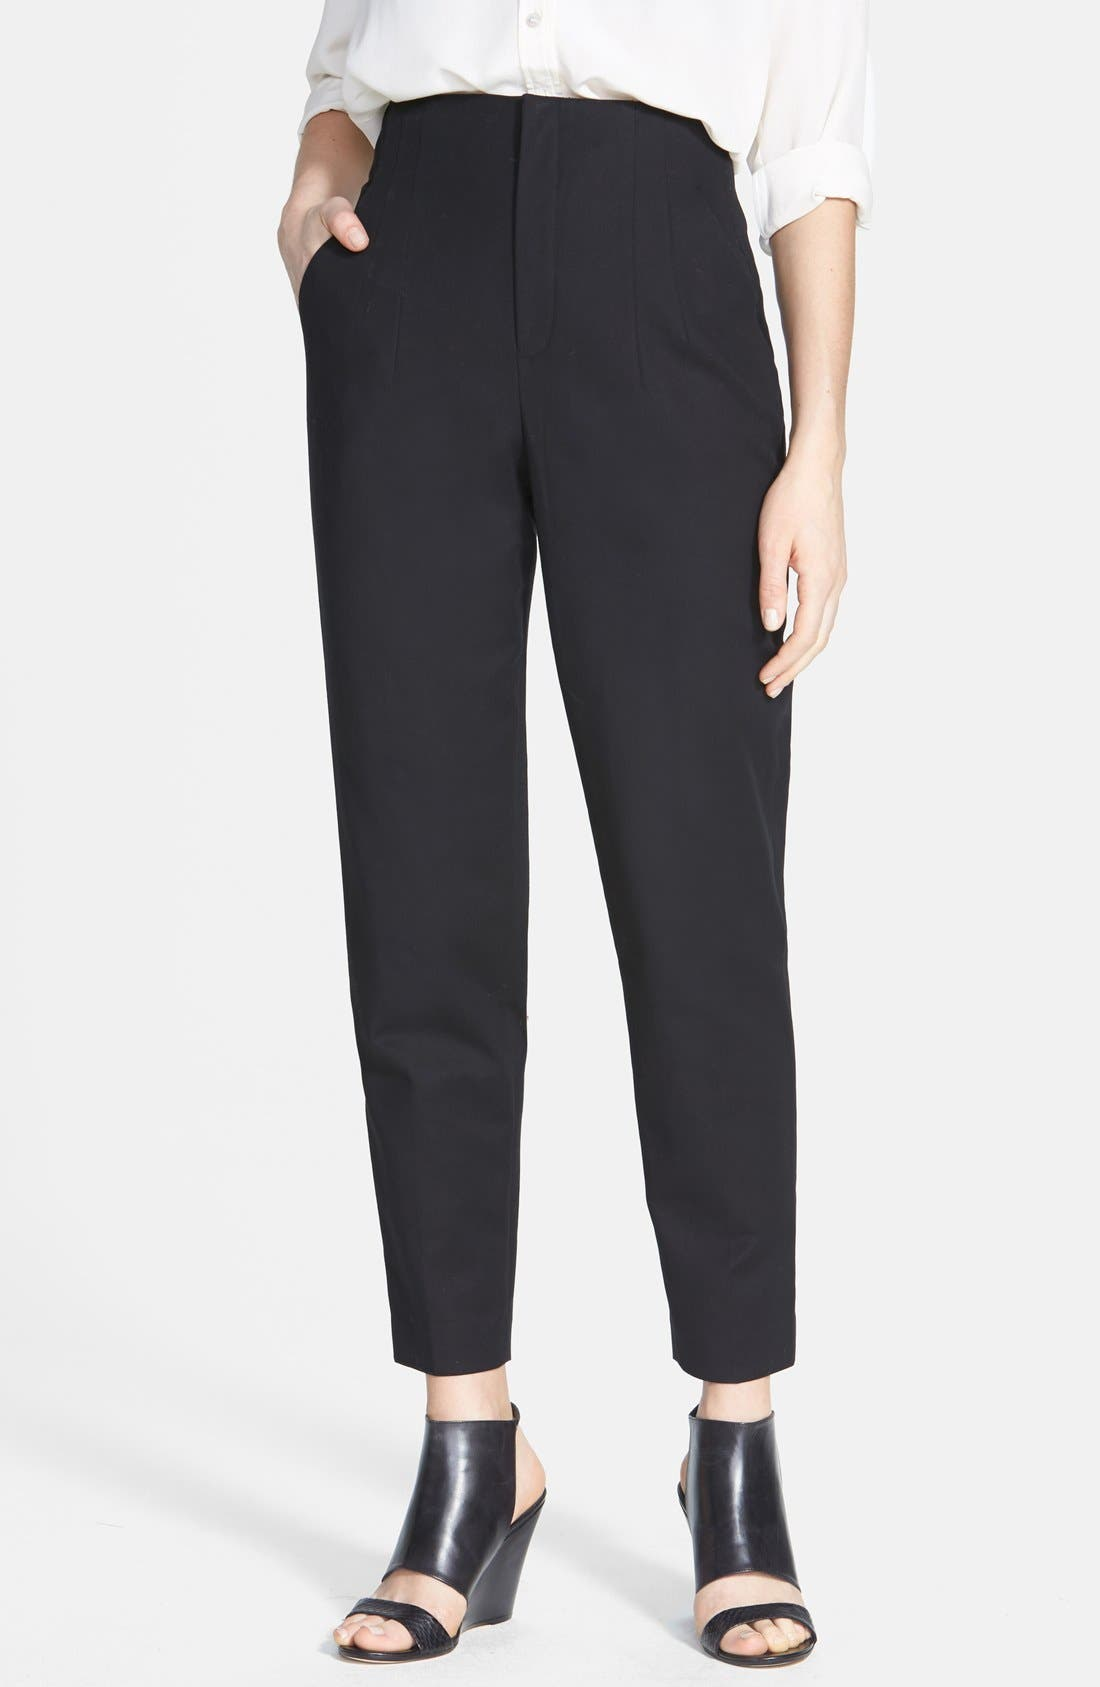 Main Image - Vince Camuto Crop Stretch Cotton High Waist Pants